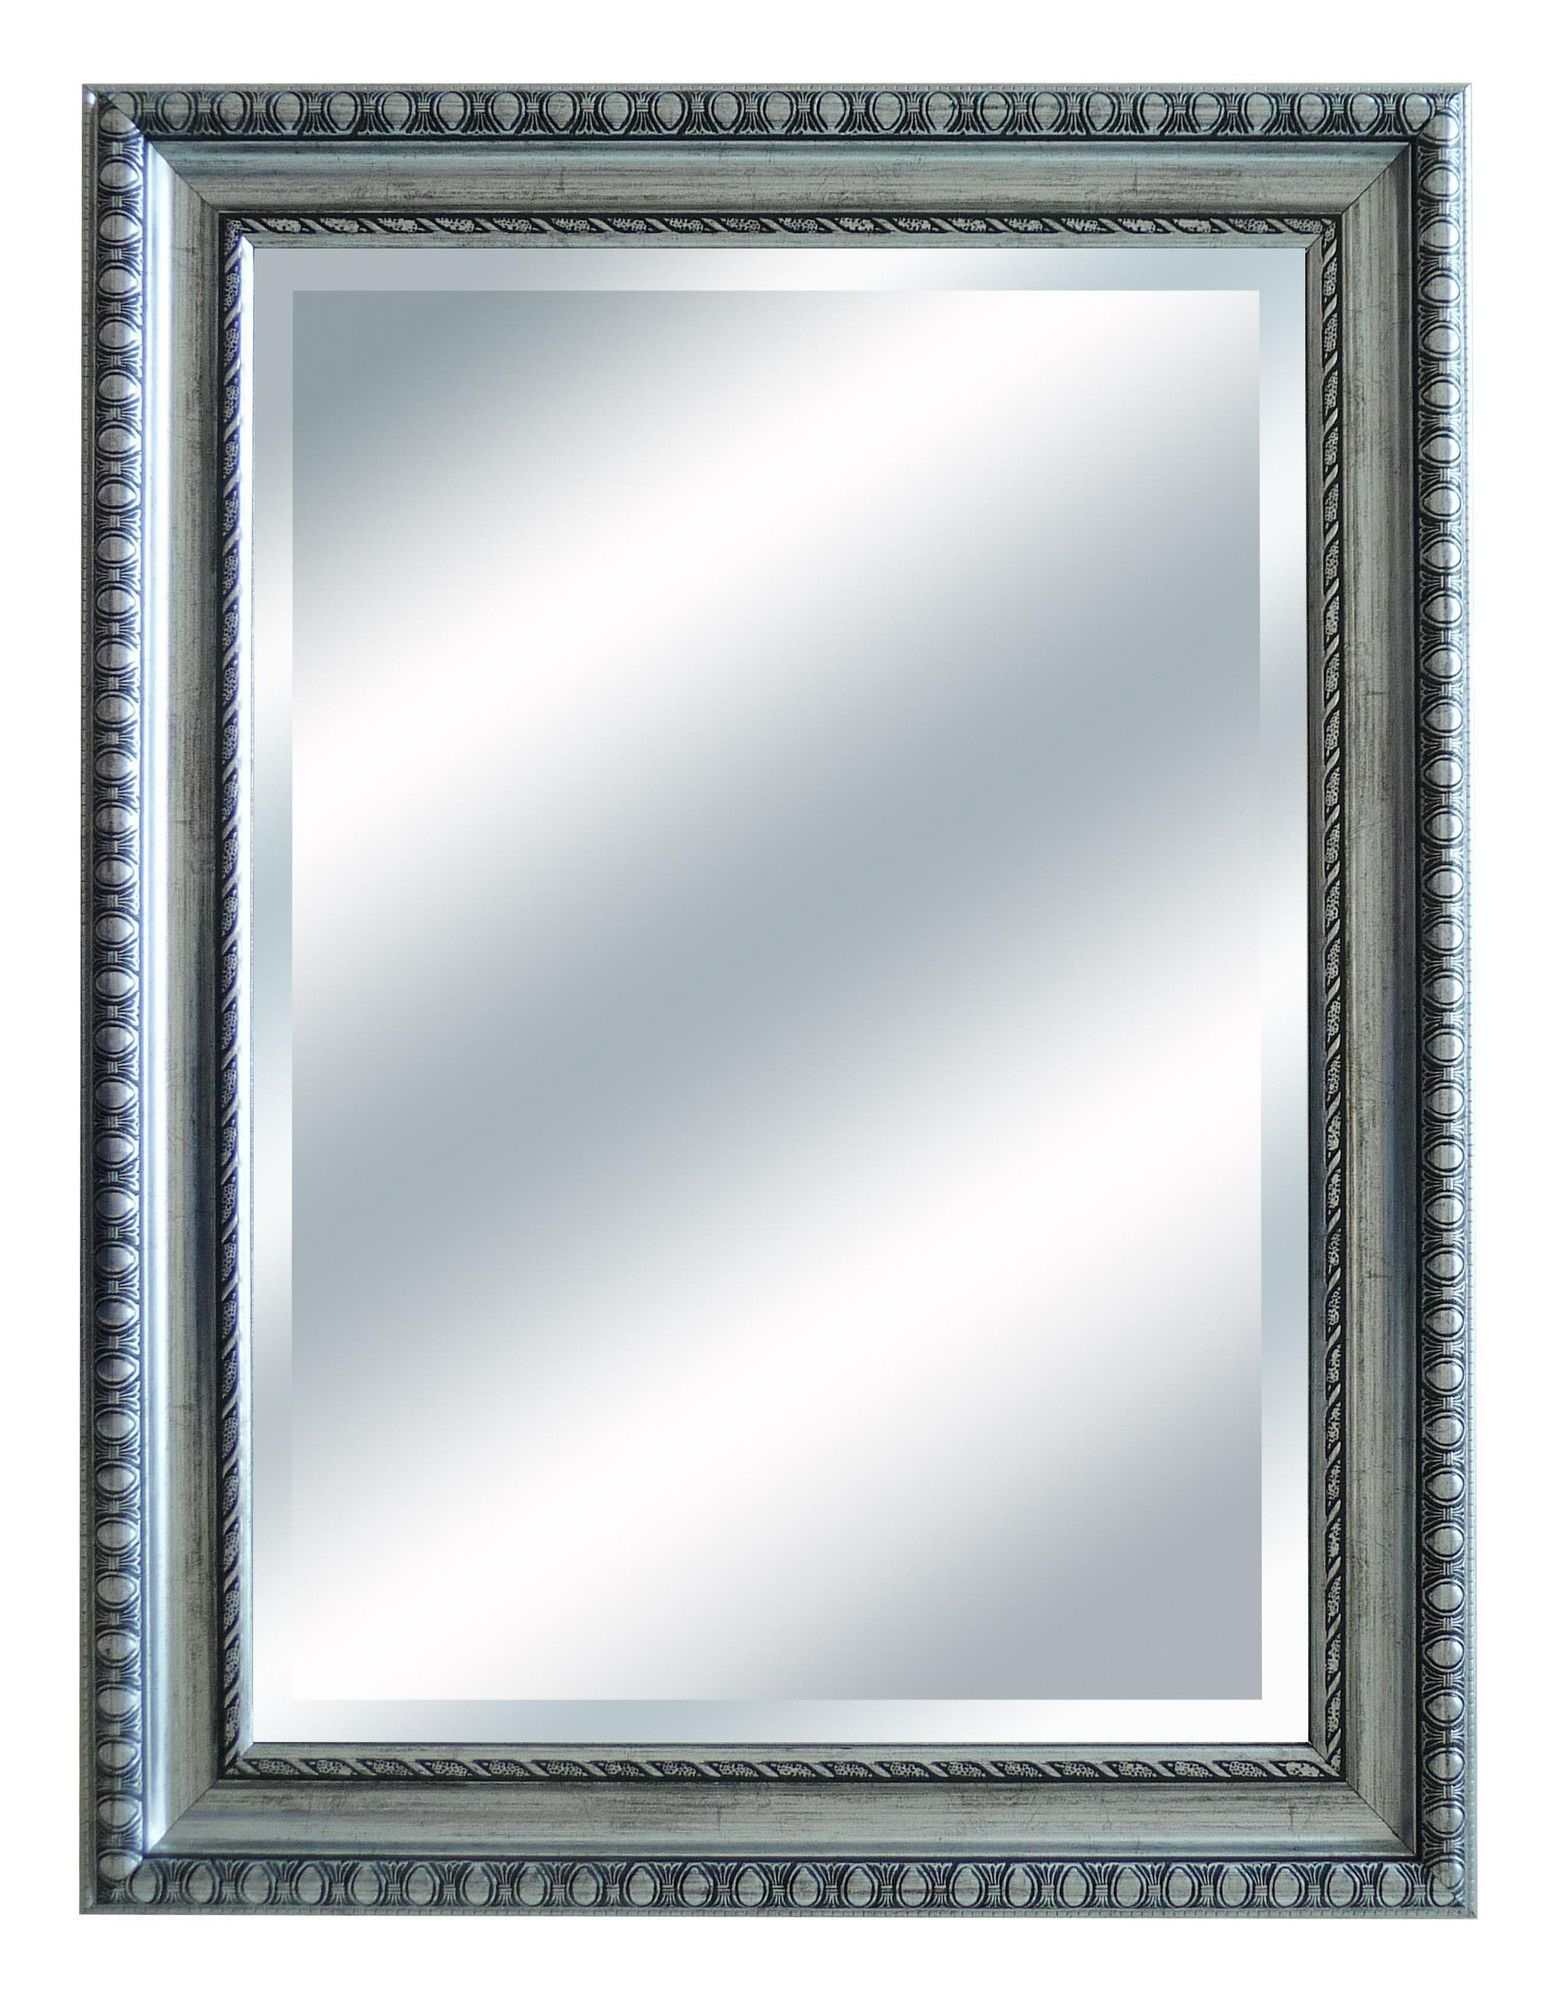 Framed Wall Mirror | Products | Frames On Wall, Mirror, Wall Regarding Farmhouse Woodgrain And Leaf Accent Wall Mirrors (View 3 of 20)